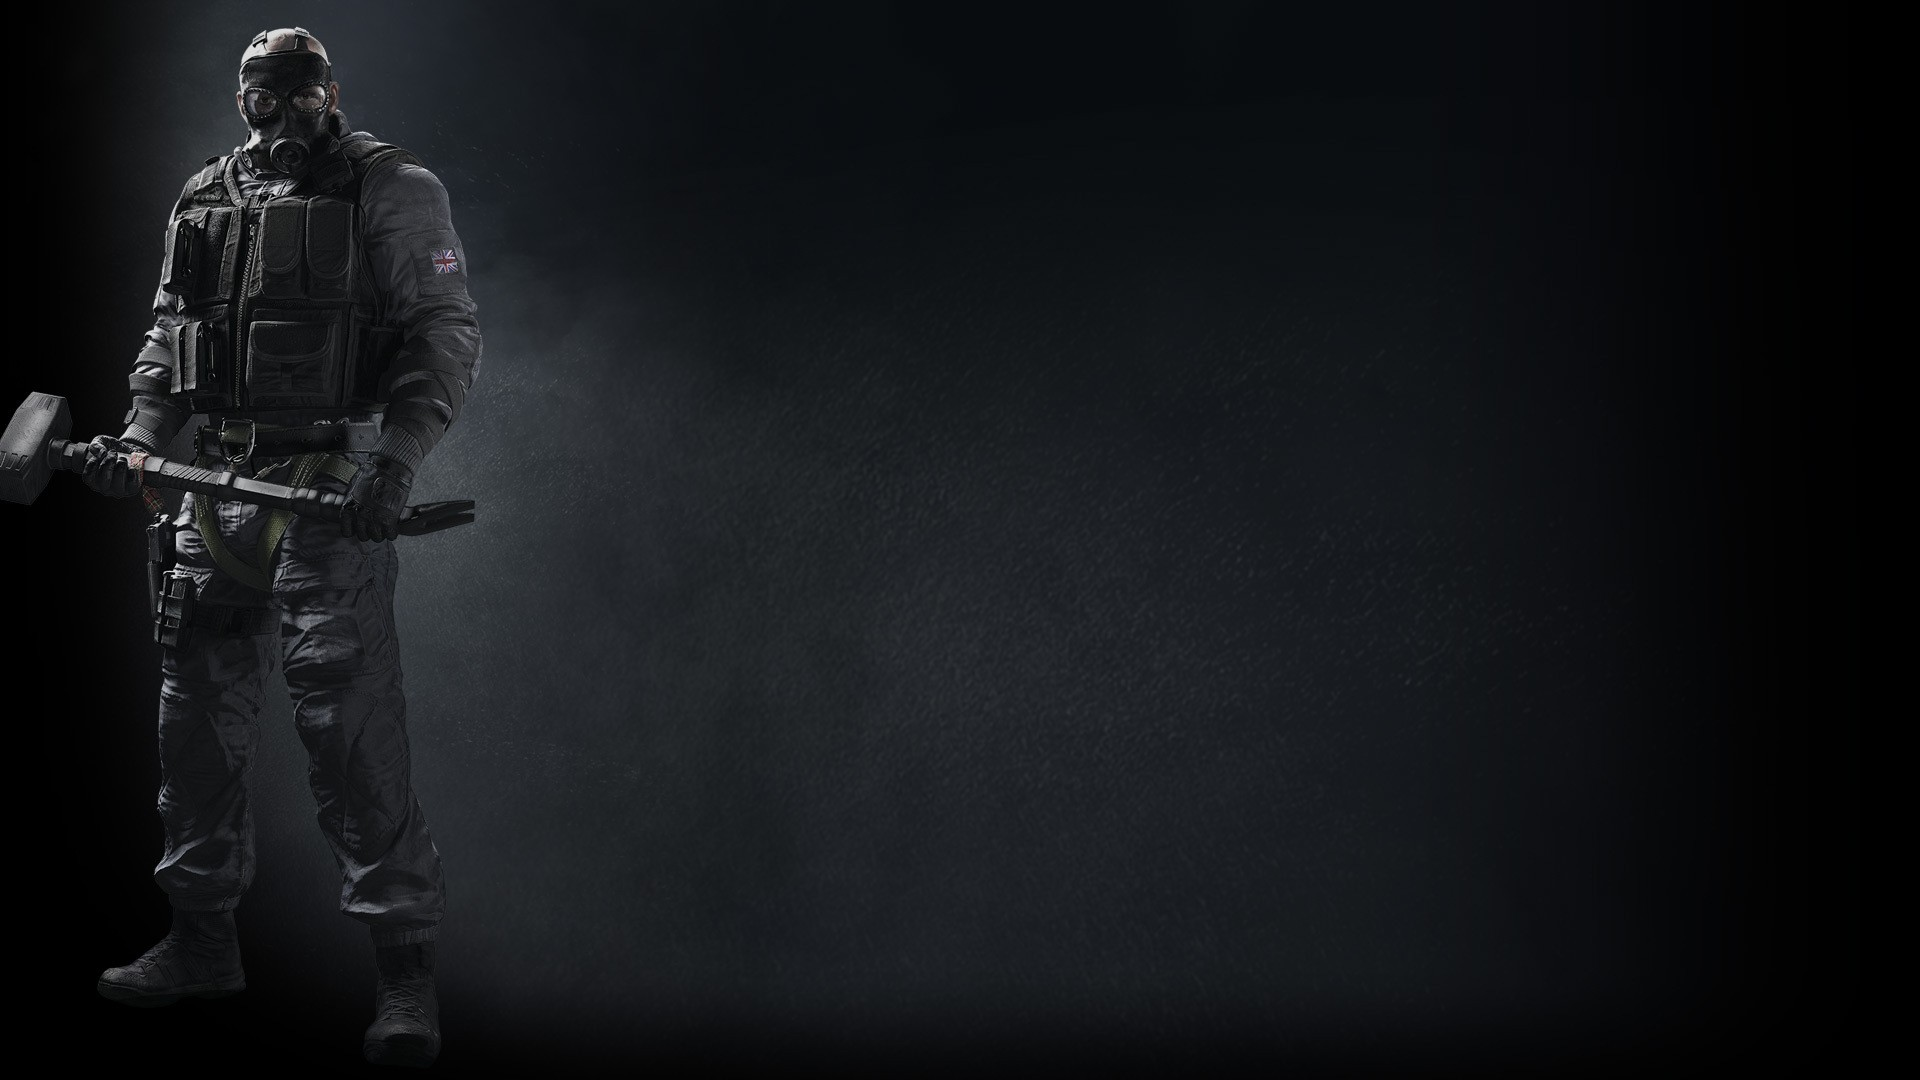 Tom Clancy S Rainbow Six Siege Background Sledge   - Rainbow Six Siege Steam Background - HD Wallpaper